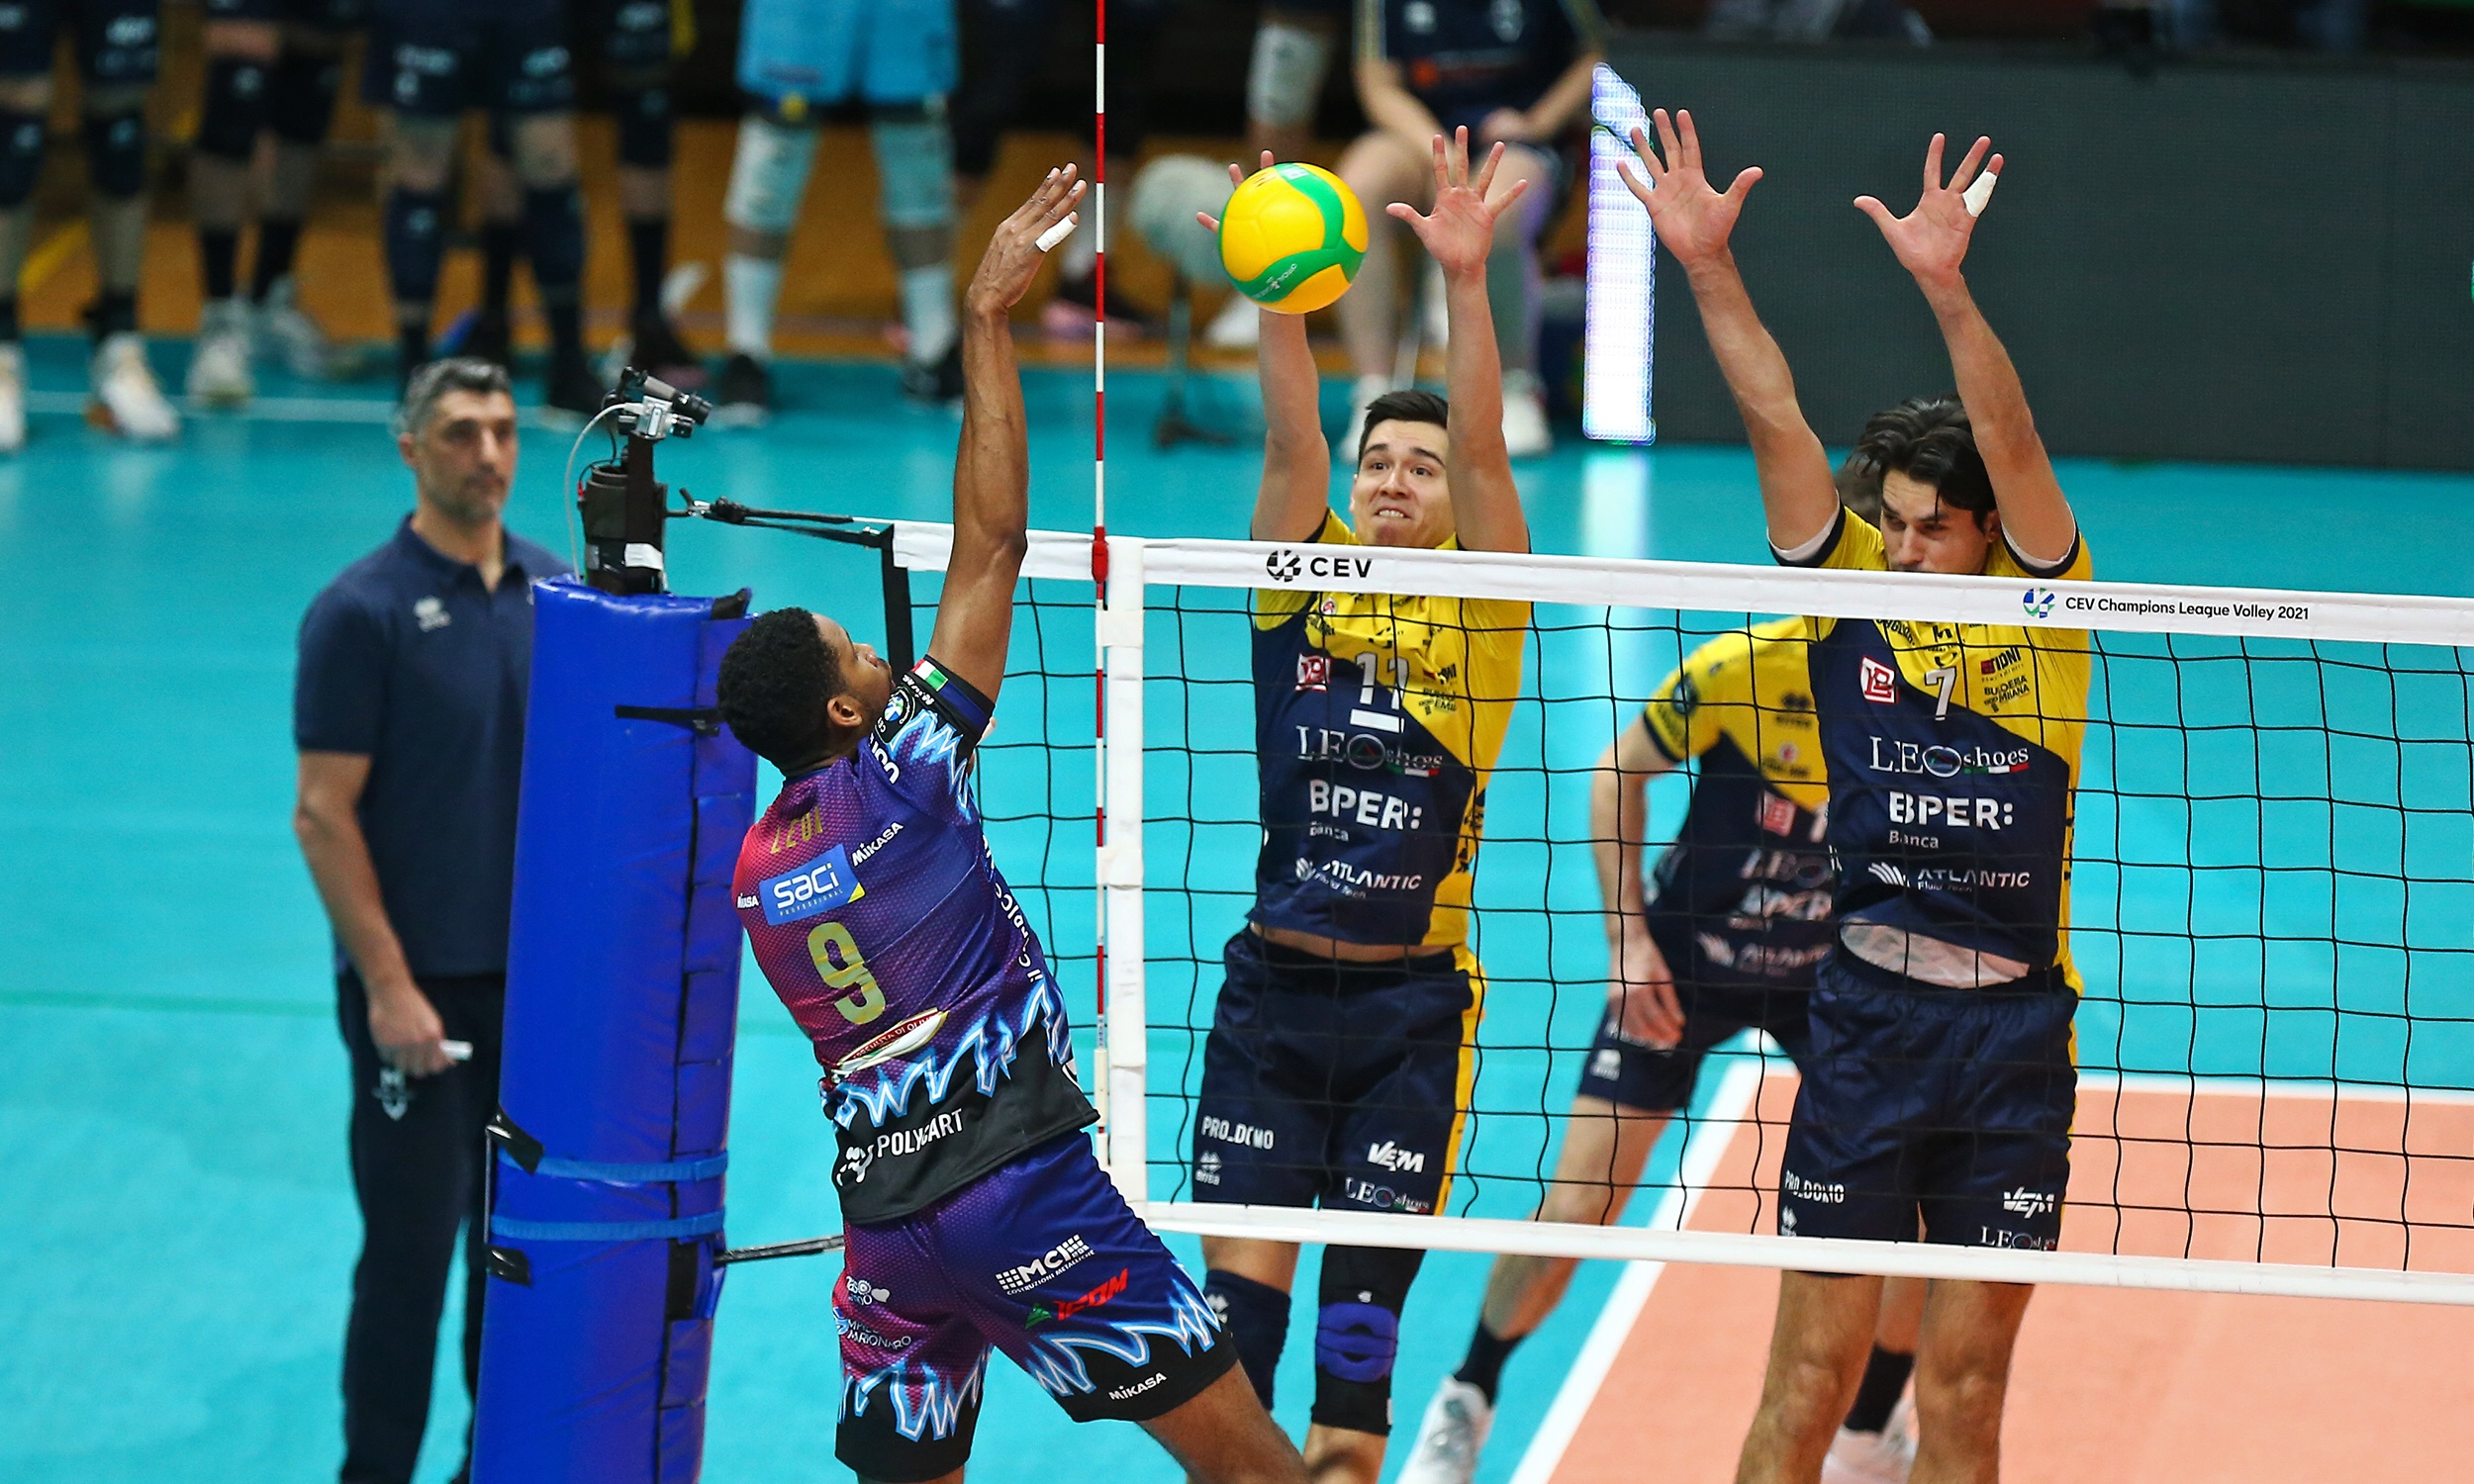 Champions League: a perfect Modena sweep Perugia at playoff opening